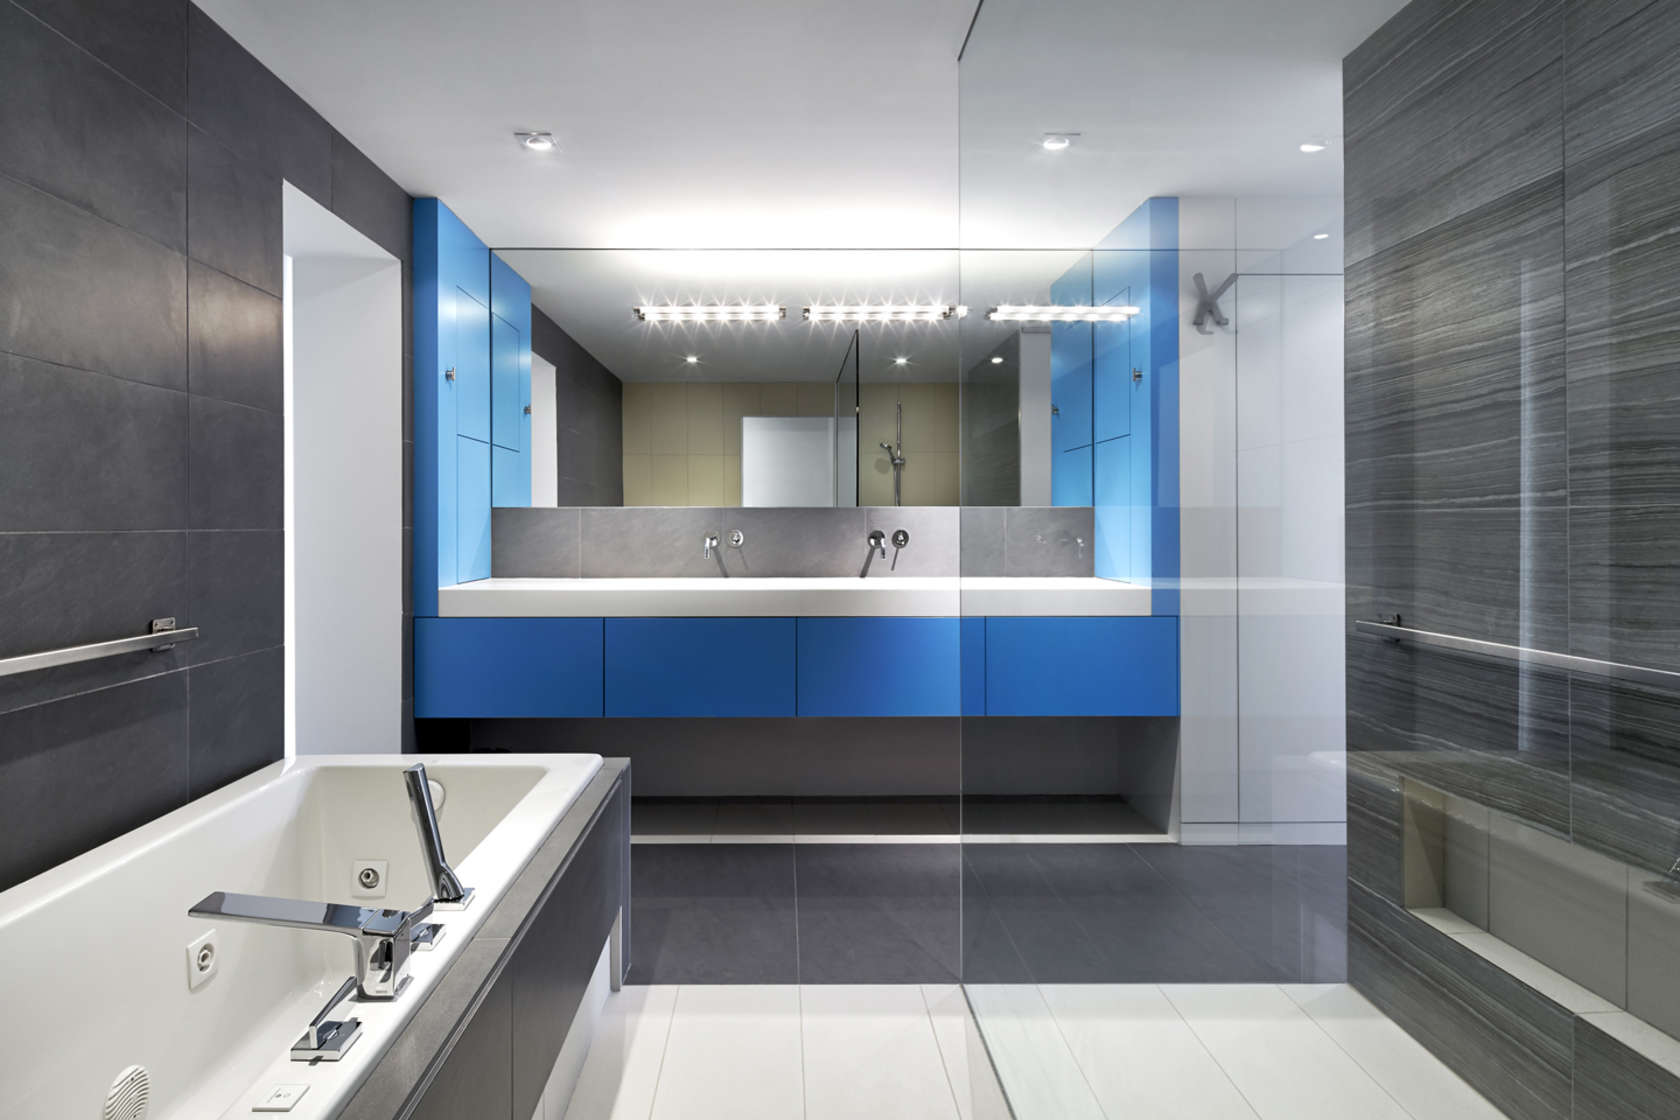 Luxury Bathroom modern-luxury-bathroom | interior design ideas.